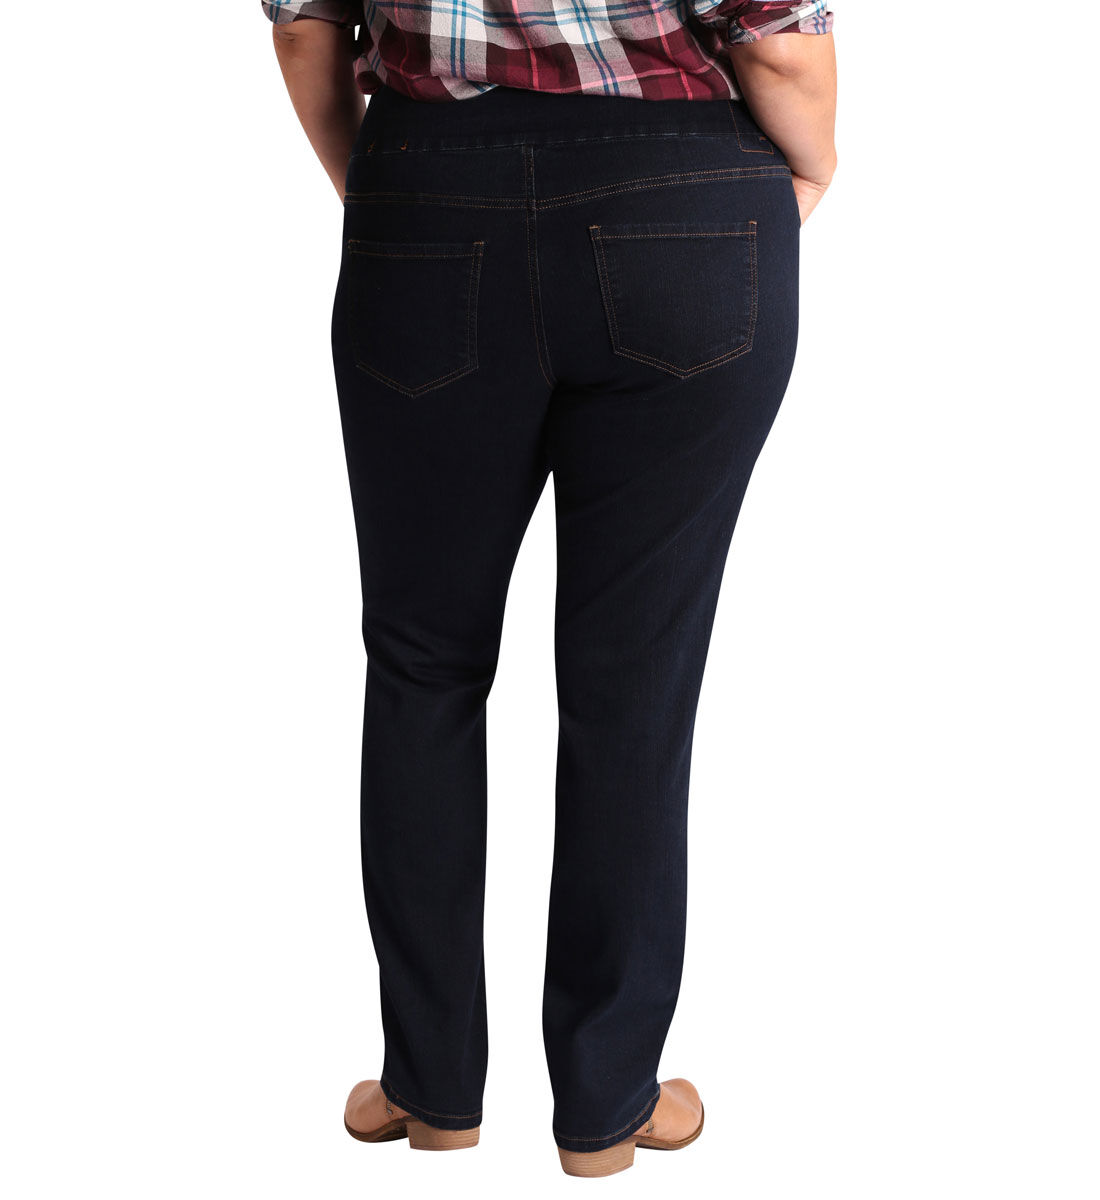 Plus nora narrow hi res also women   clothing in sizes jag jeans rh jagjeans